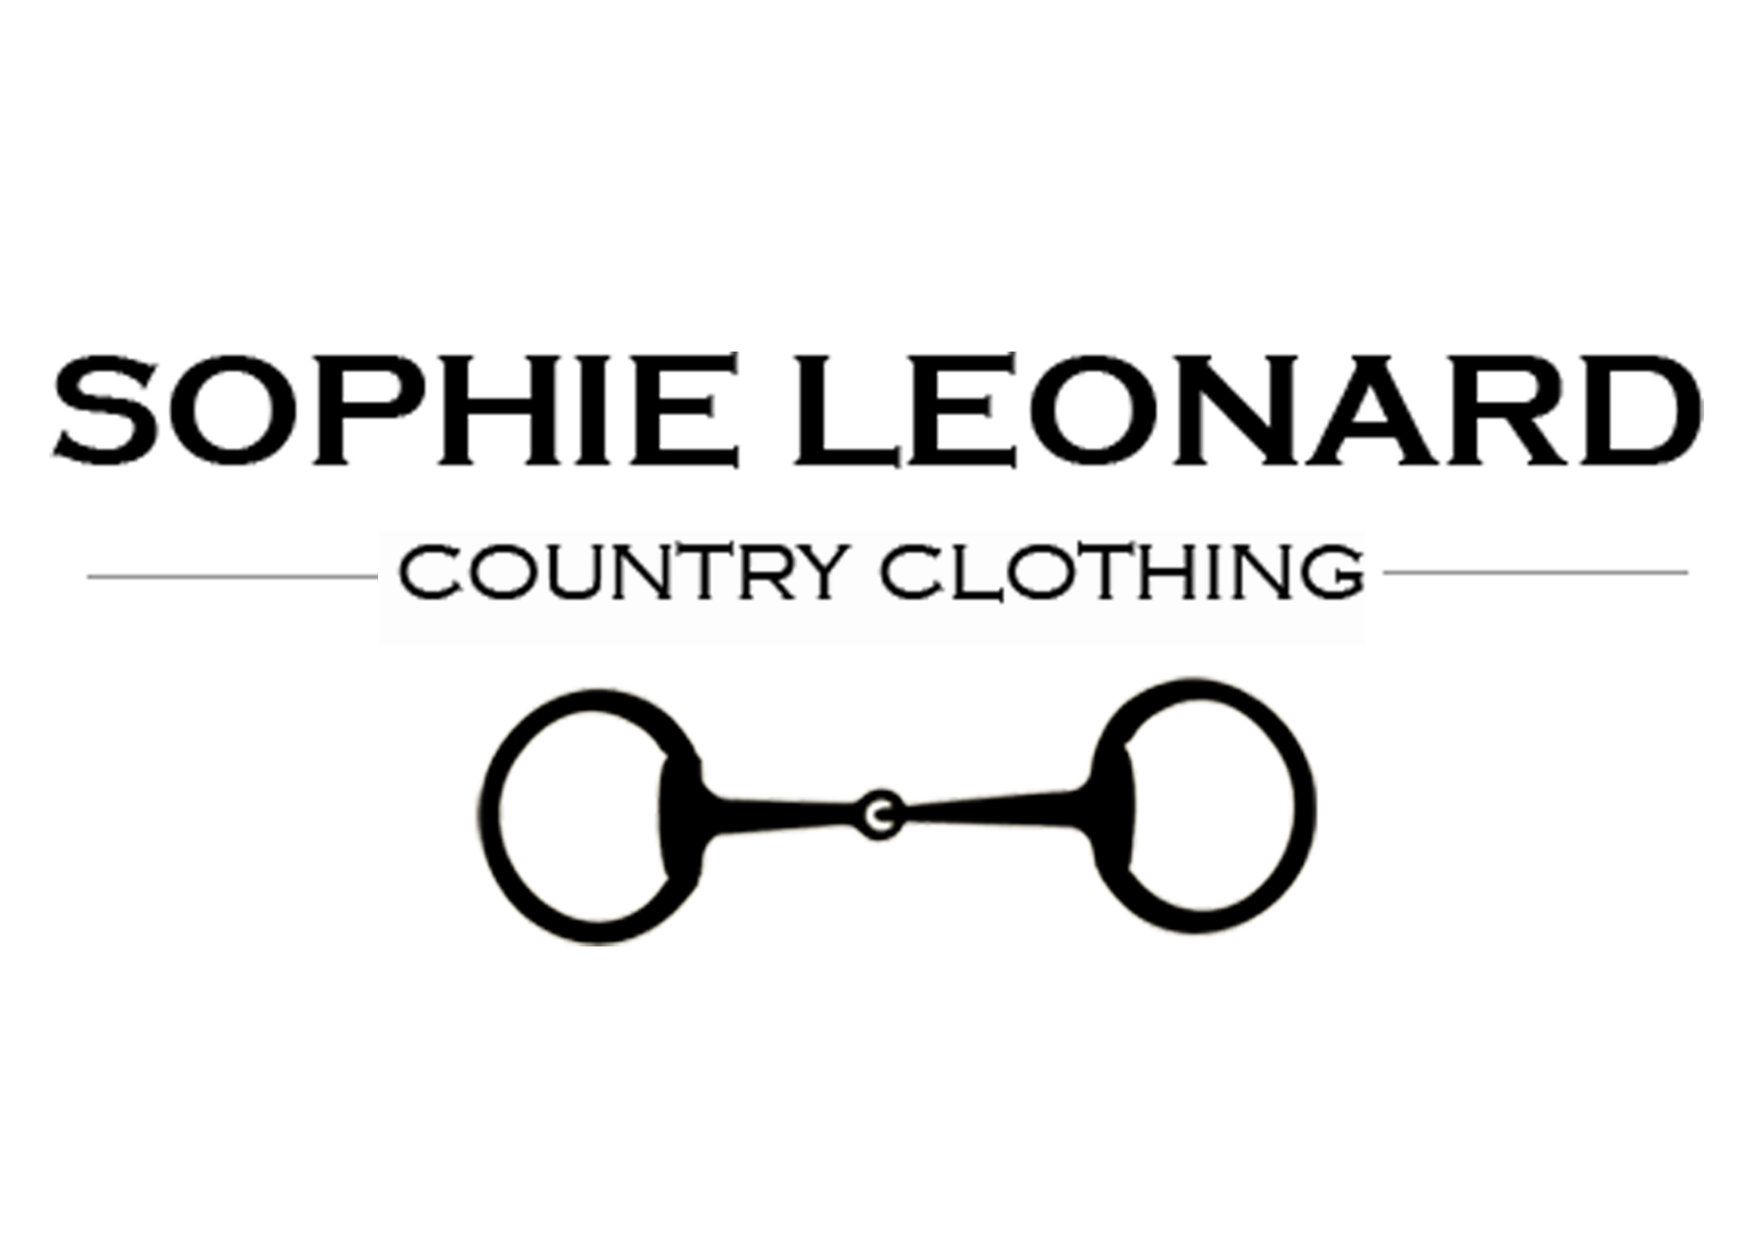 Sophie Leonard Country Clothing